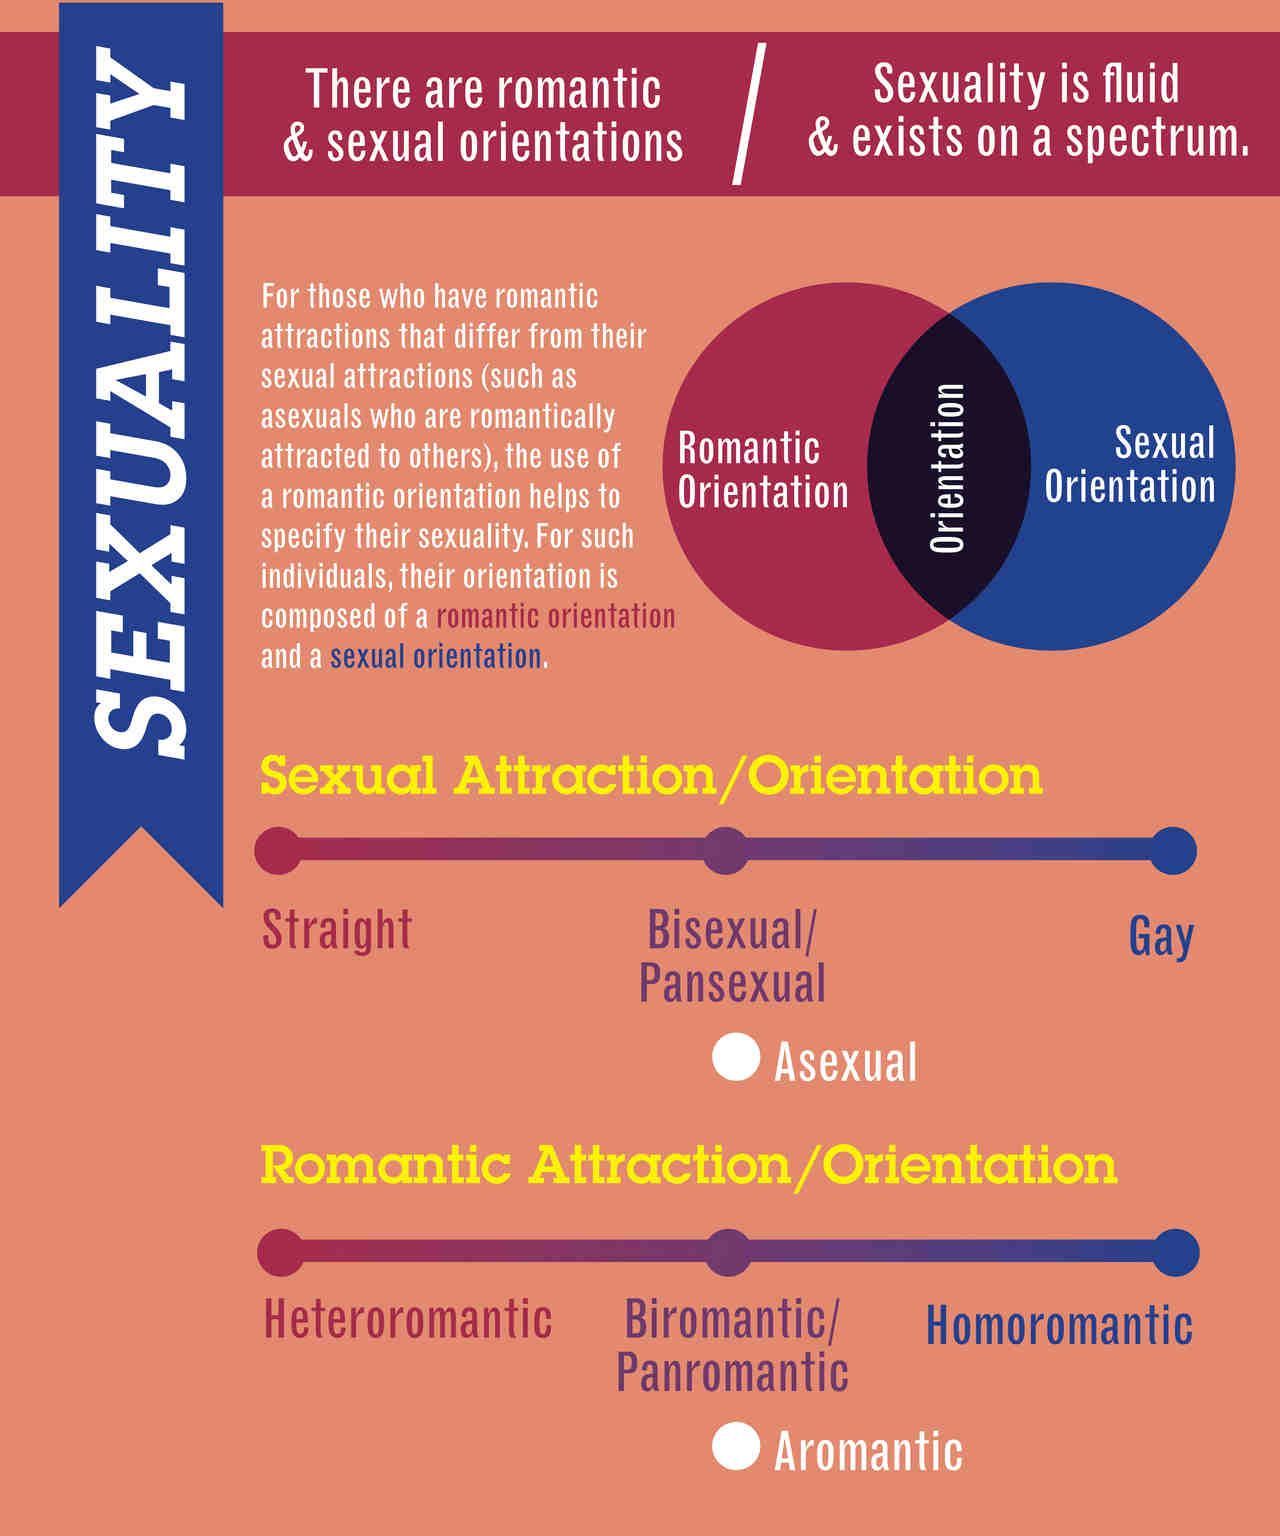 All sexualities and romantic orientations